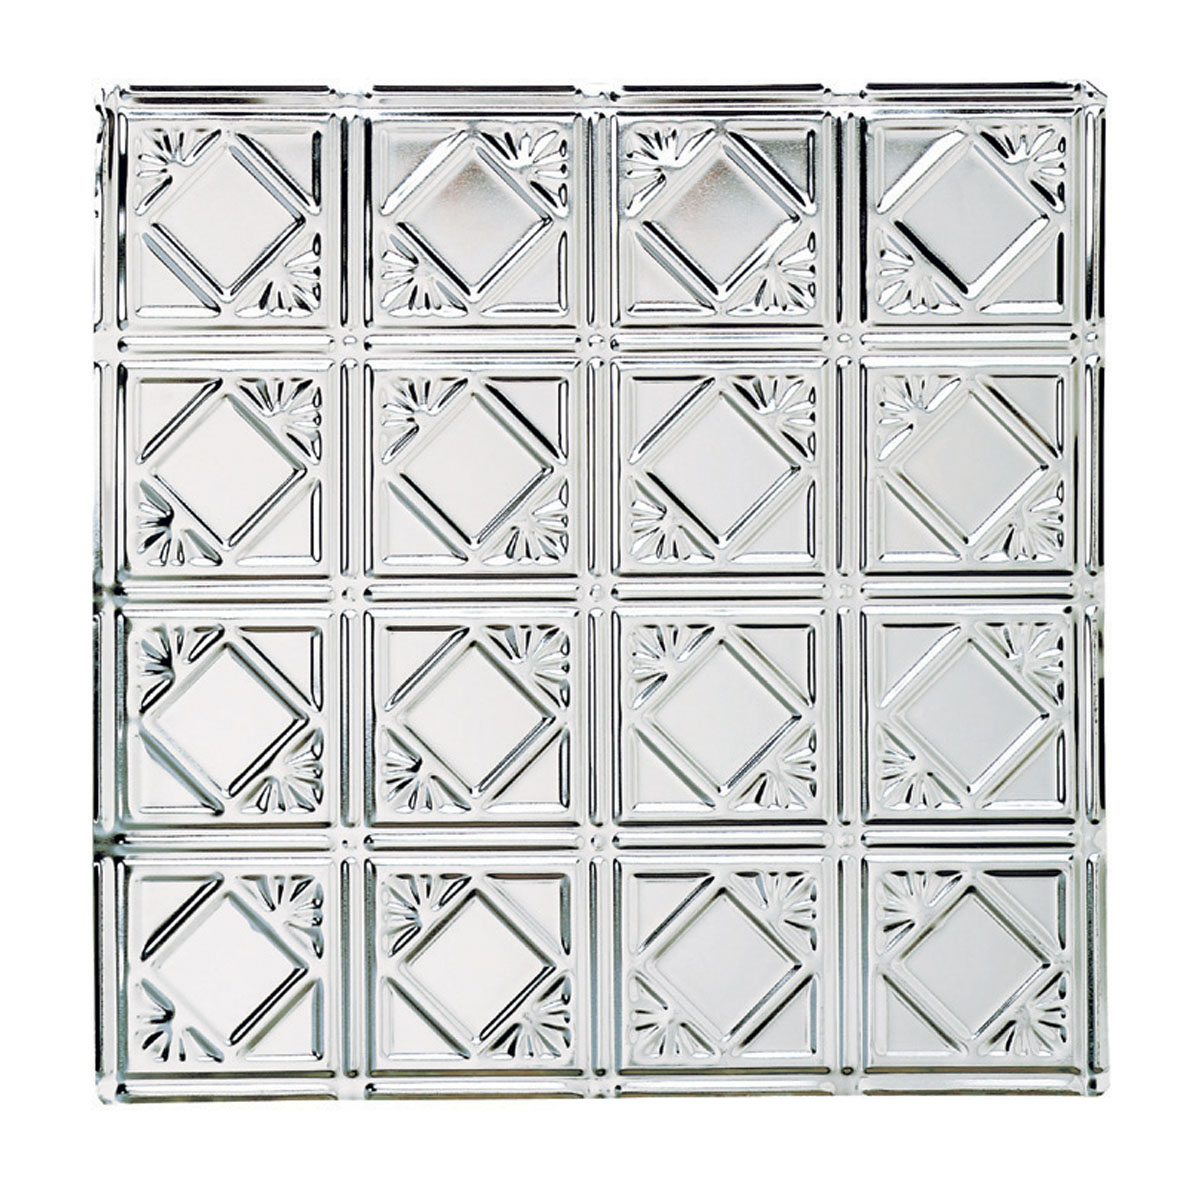 Ceiling Tiles Tin Plated Steel Diamond 2' x 2' | Renovator's Supply